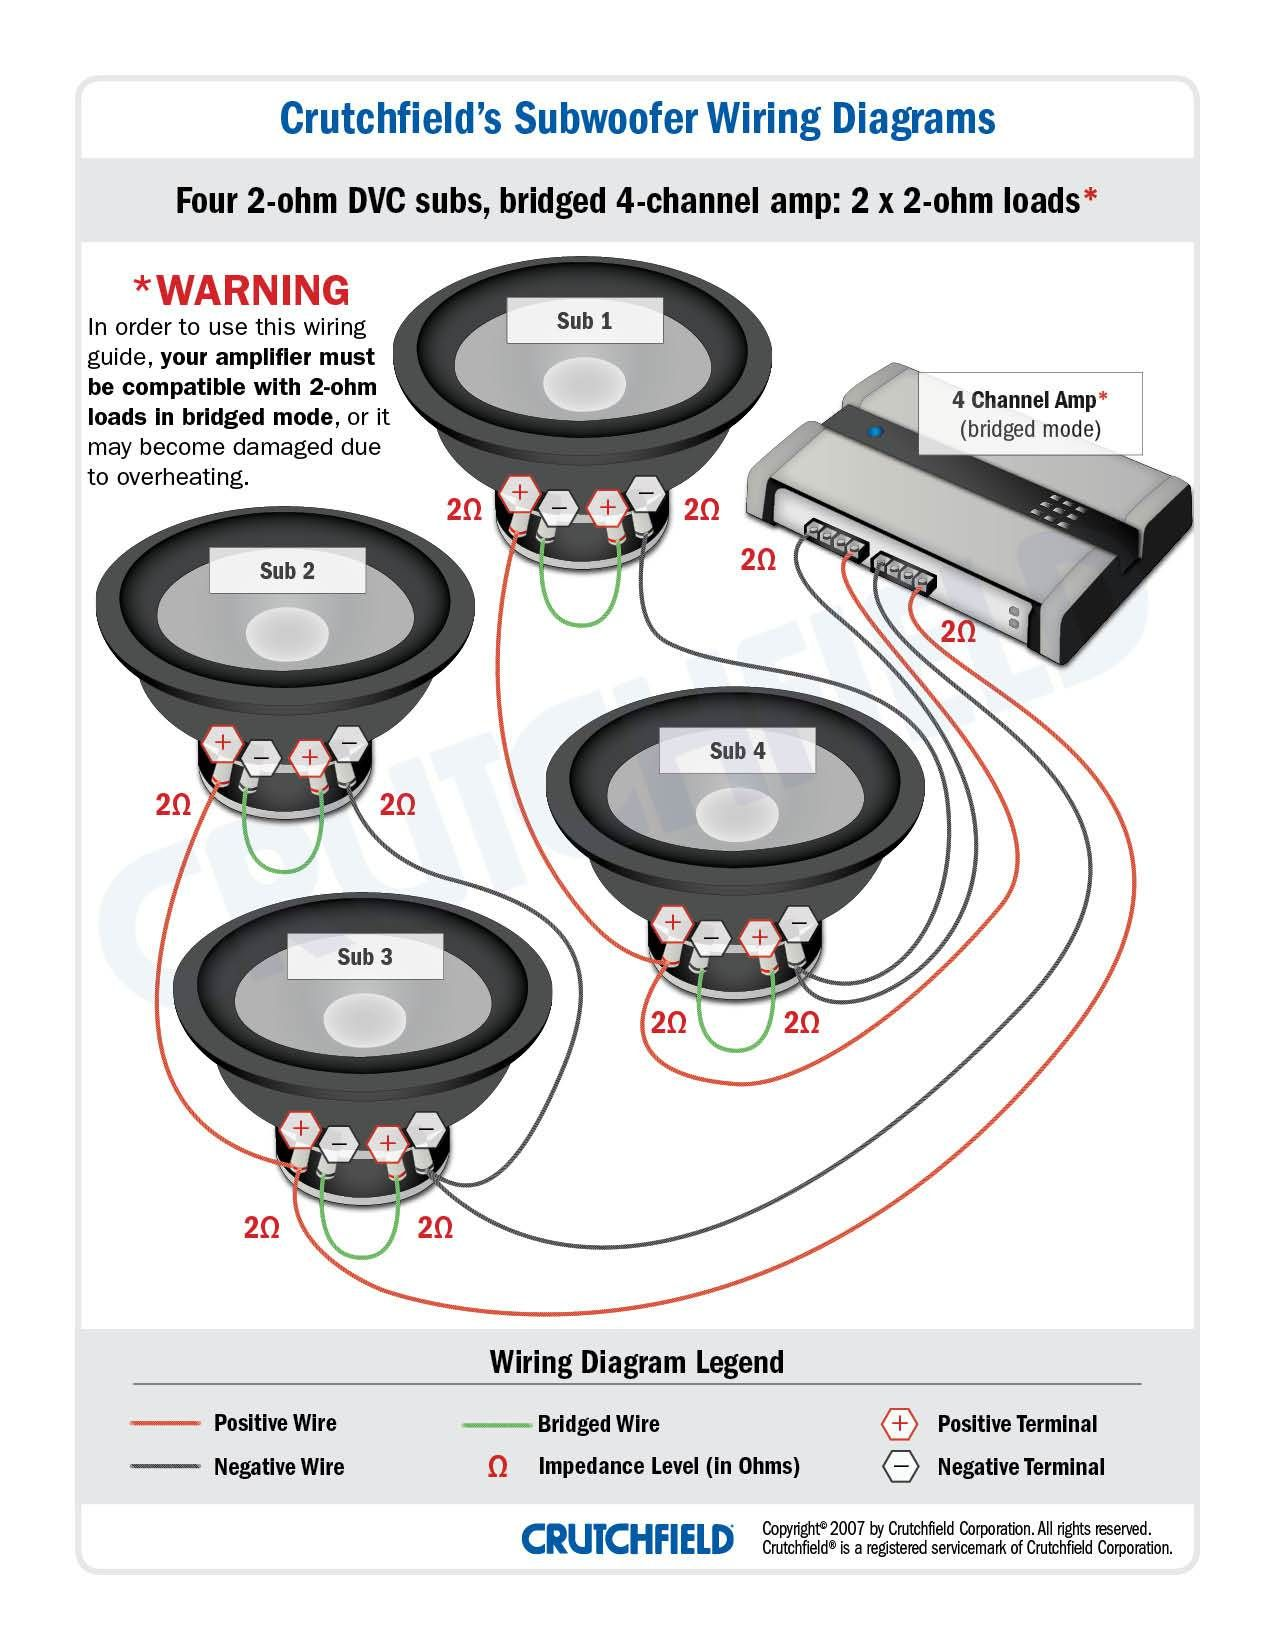 Subwoofer Wiring Diagrams Throughout 4 Ohm Dual Voice Coil Diagram JBL Car  Speakers Wiring Diagrams Car Speaker Wiring Diagram